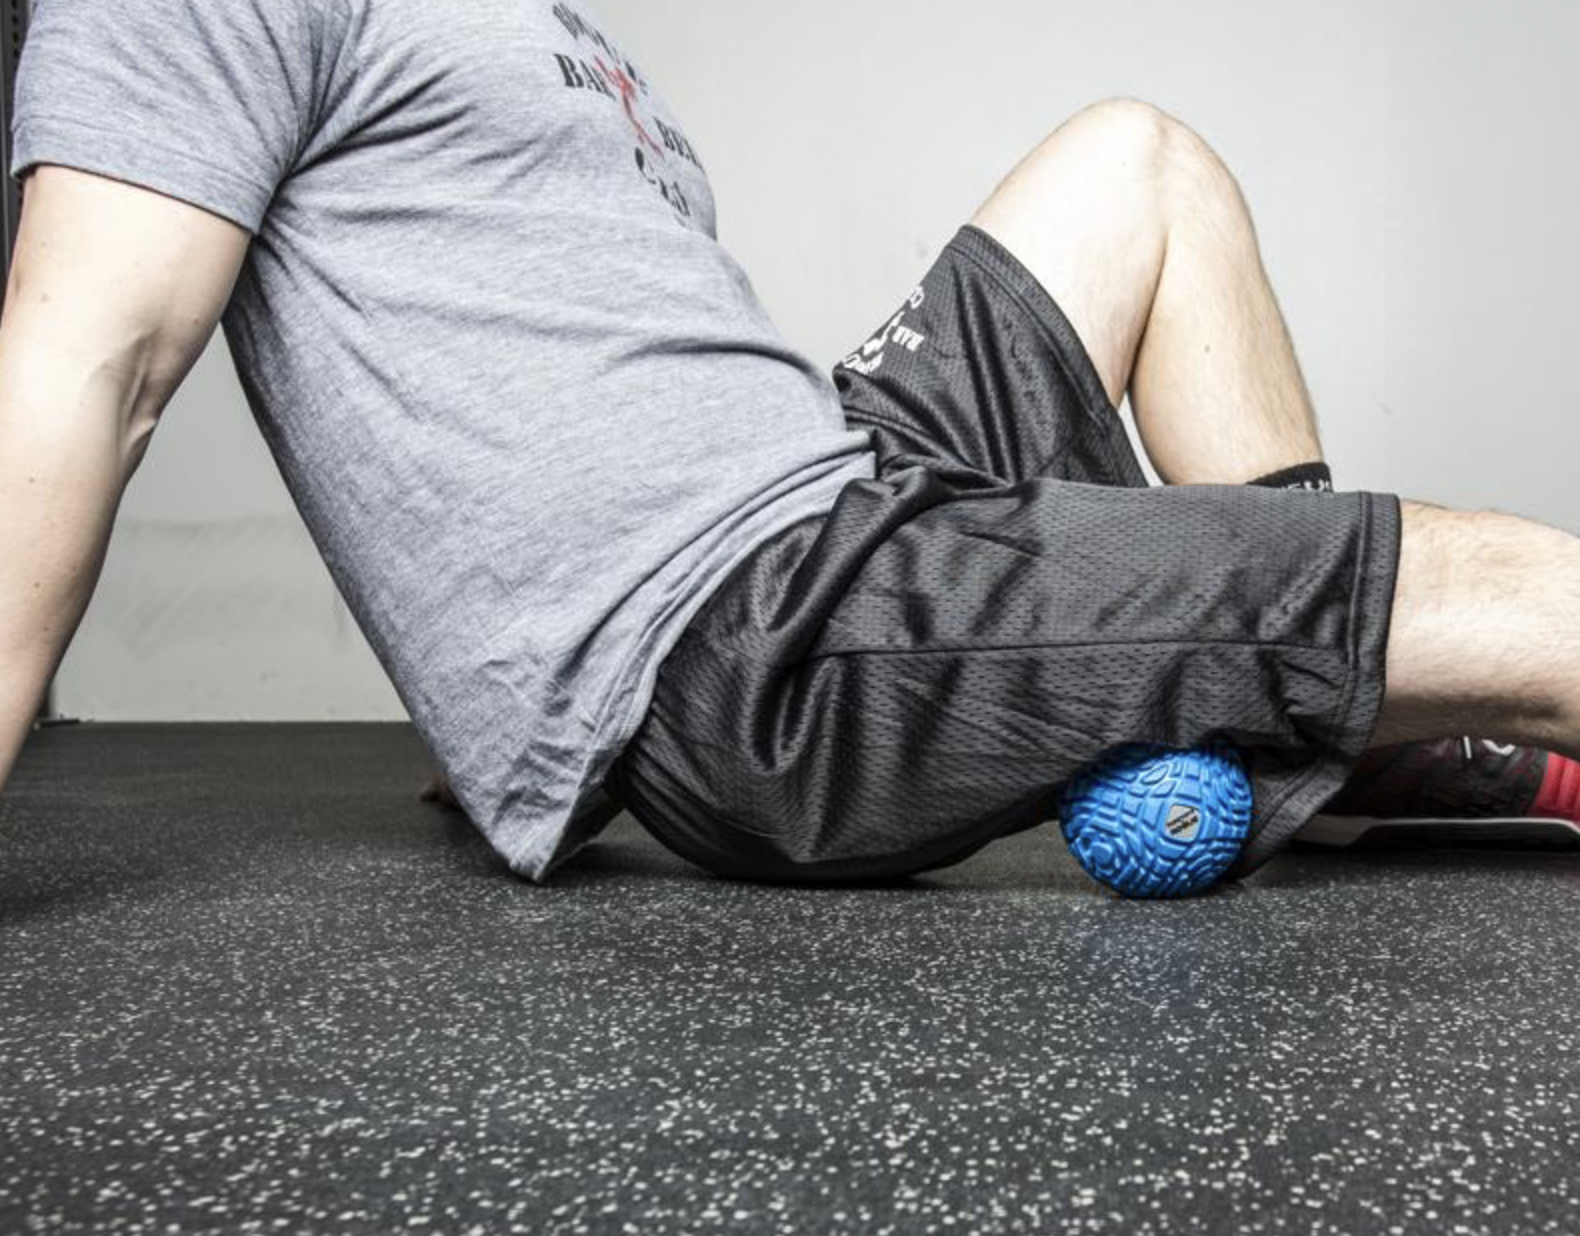 Supernova 2.0 - An alternative to traditional foam rollers and massage balls, with an improved nylon frame construction, grip-strong TPE tread, and a groove pattern that allows for a more beneficial massage and tissue therapy. Great for the hamstrings, rhomboids, chest, calves and everything else. The ball is 4.72 inches in diameter and harder then the TP MB5 and a bit heavier.